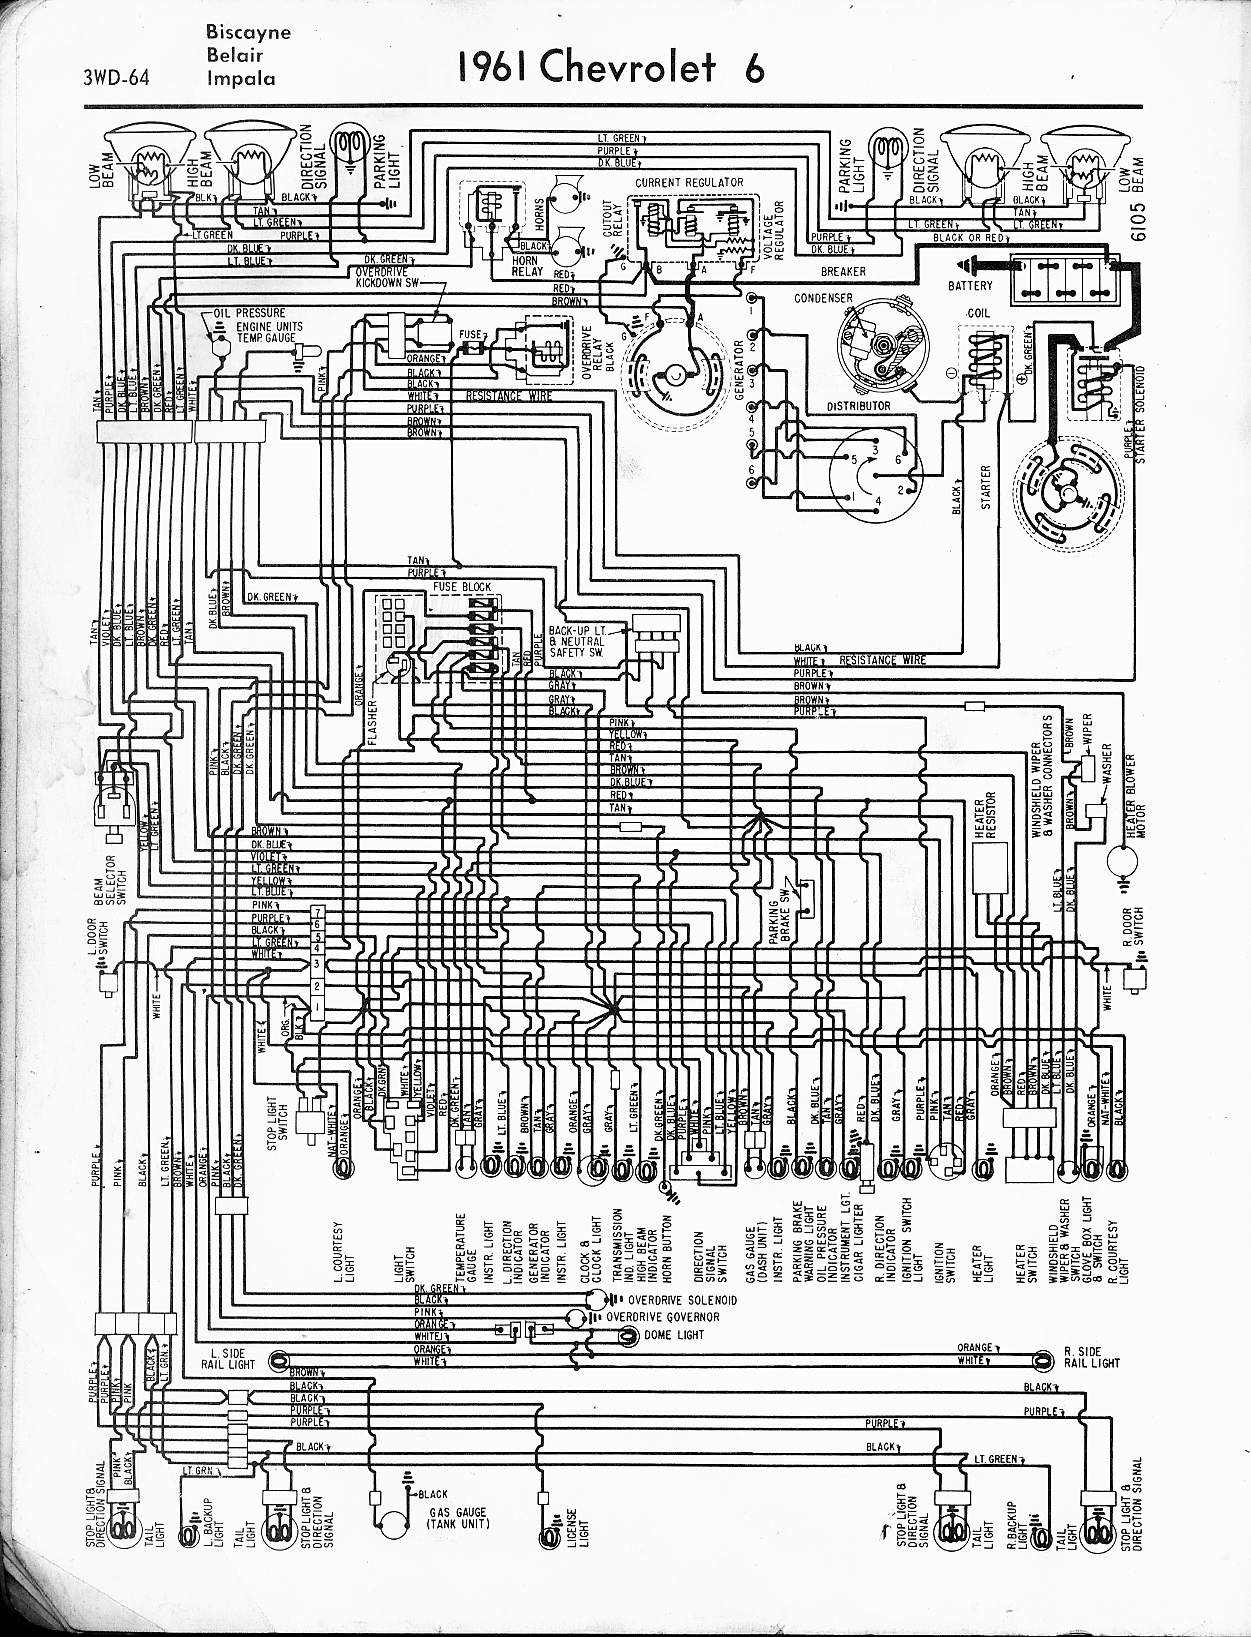 MWireChev61_3WD 064 57 65 chevy wiring diagrams 2001 chevy impala wiring harness diagram at gsmx.co